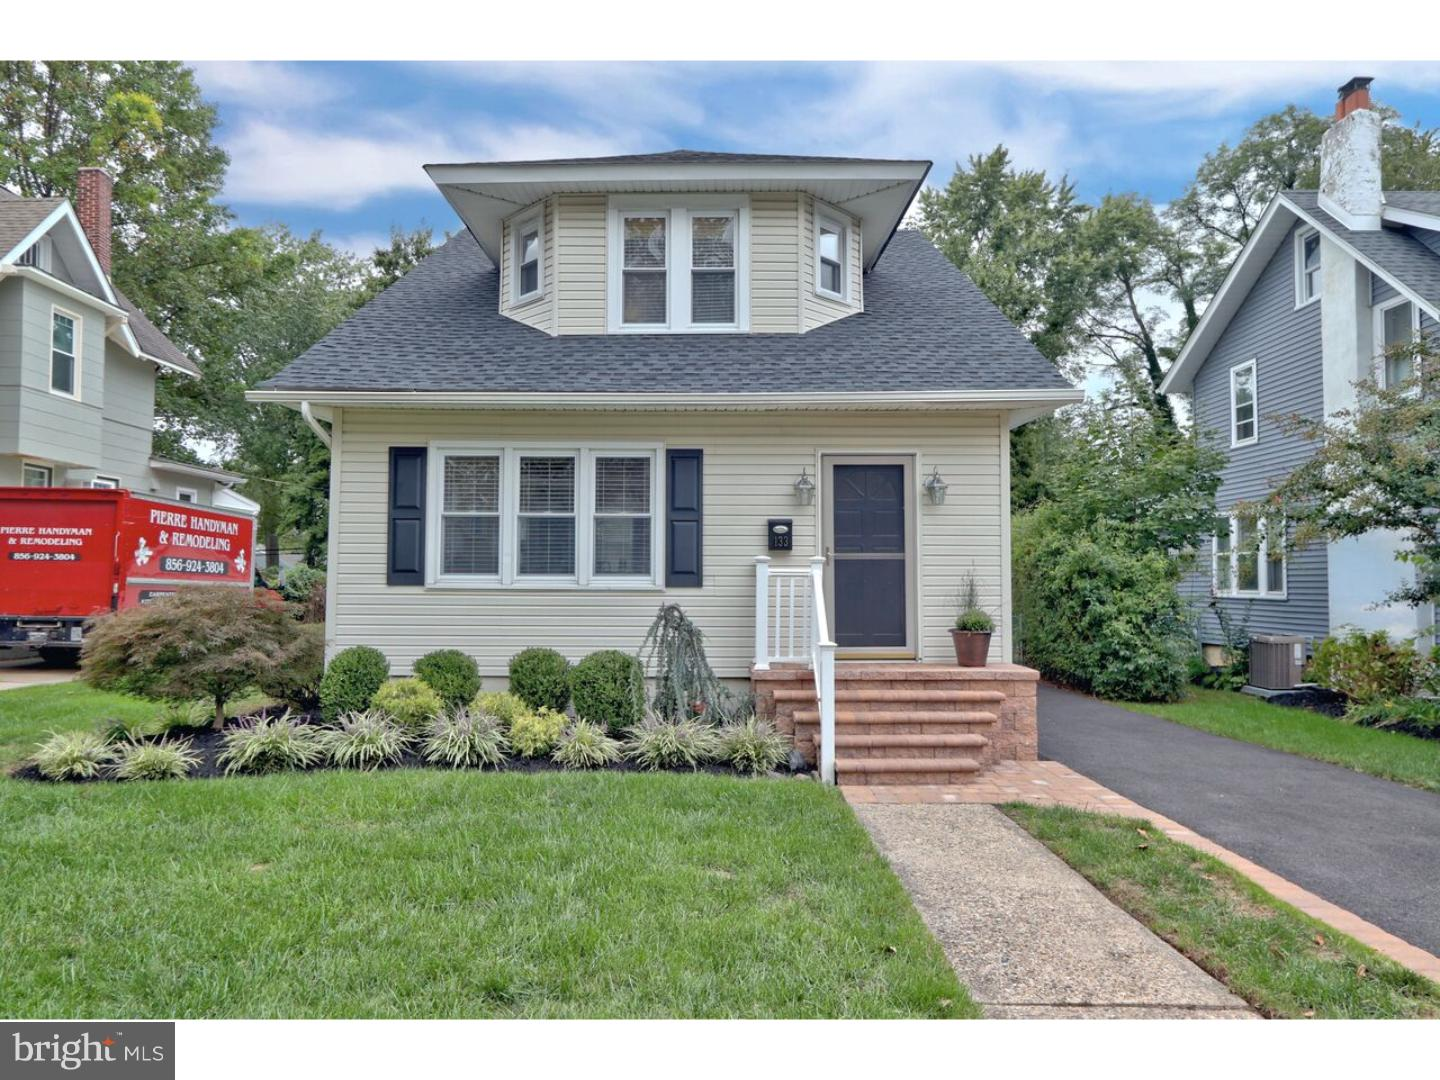 133 WASHINGTON TERRACE, AUDUBON, NJ 08106